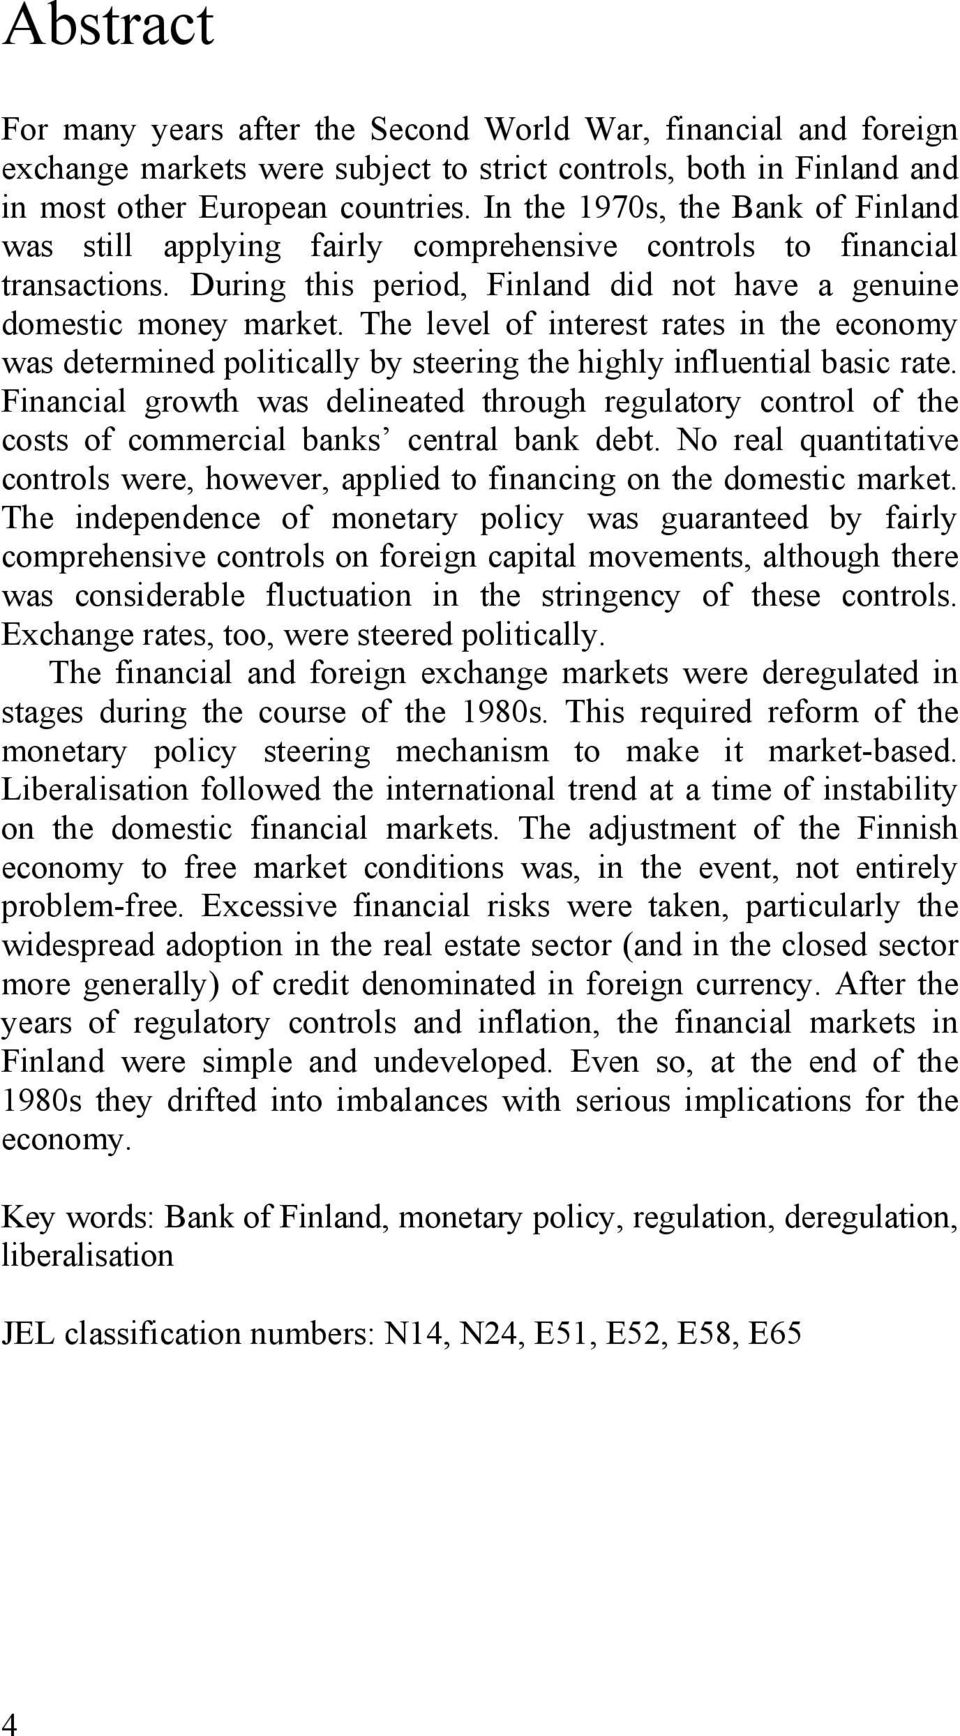 The level of interest rates in the economy was determined politically by steering the highly influential basic rate.